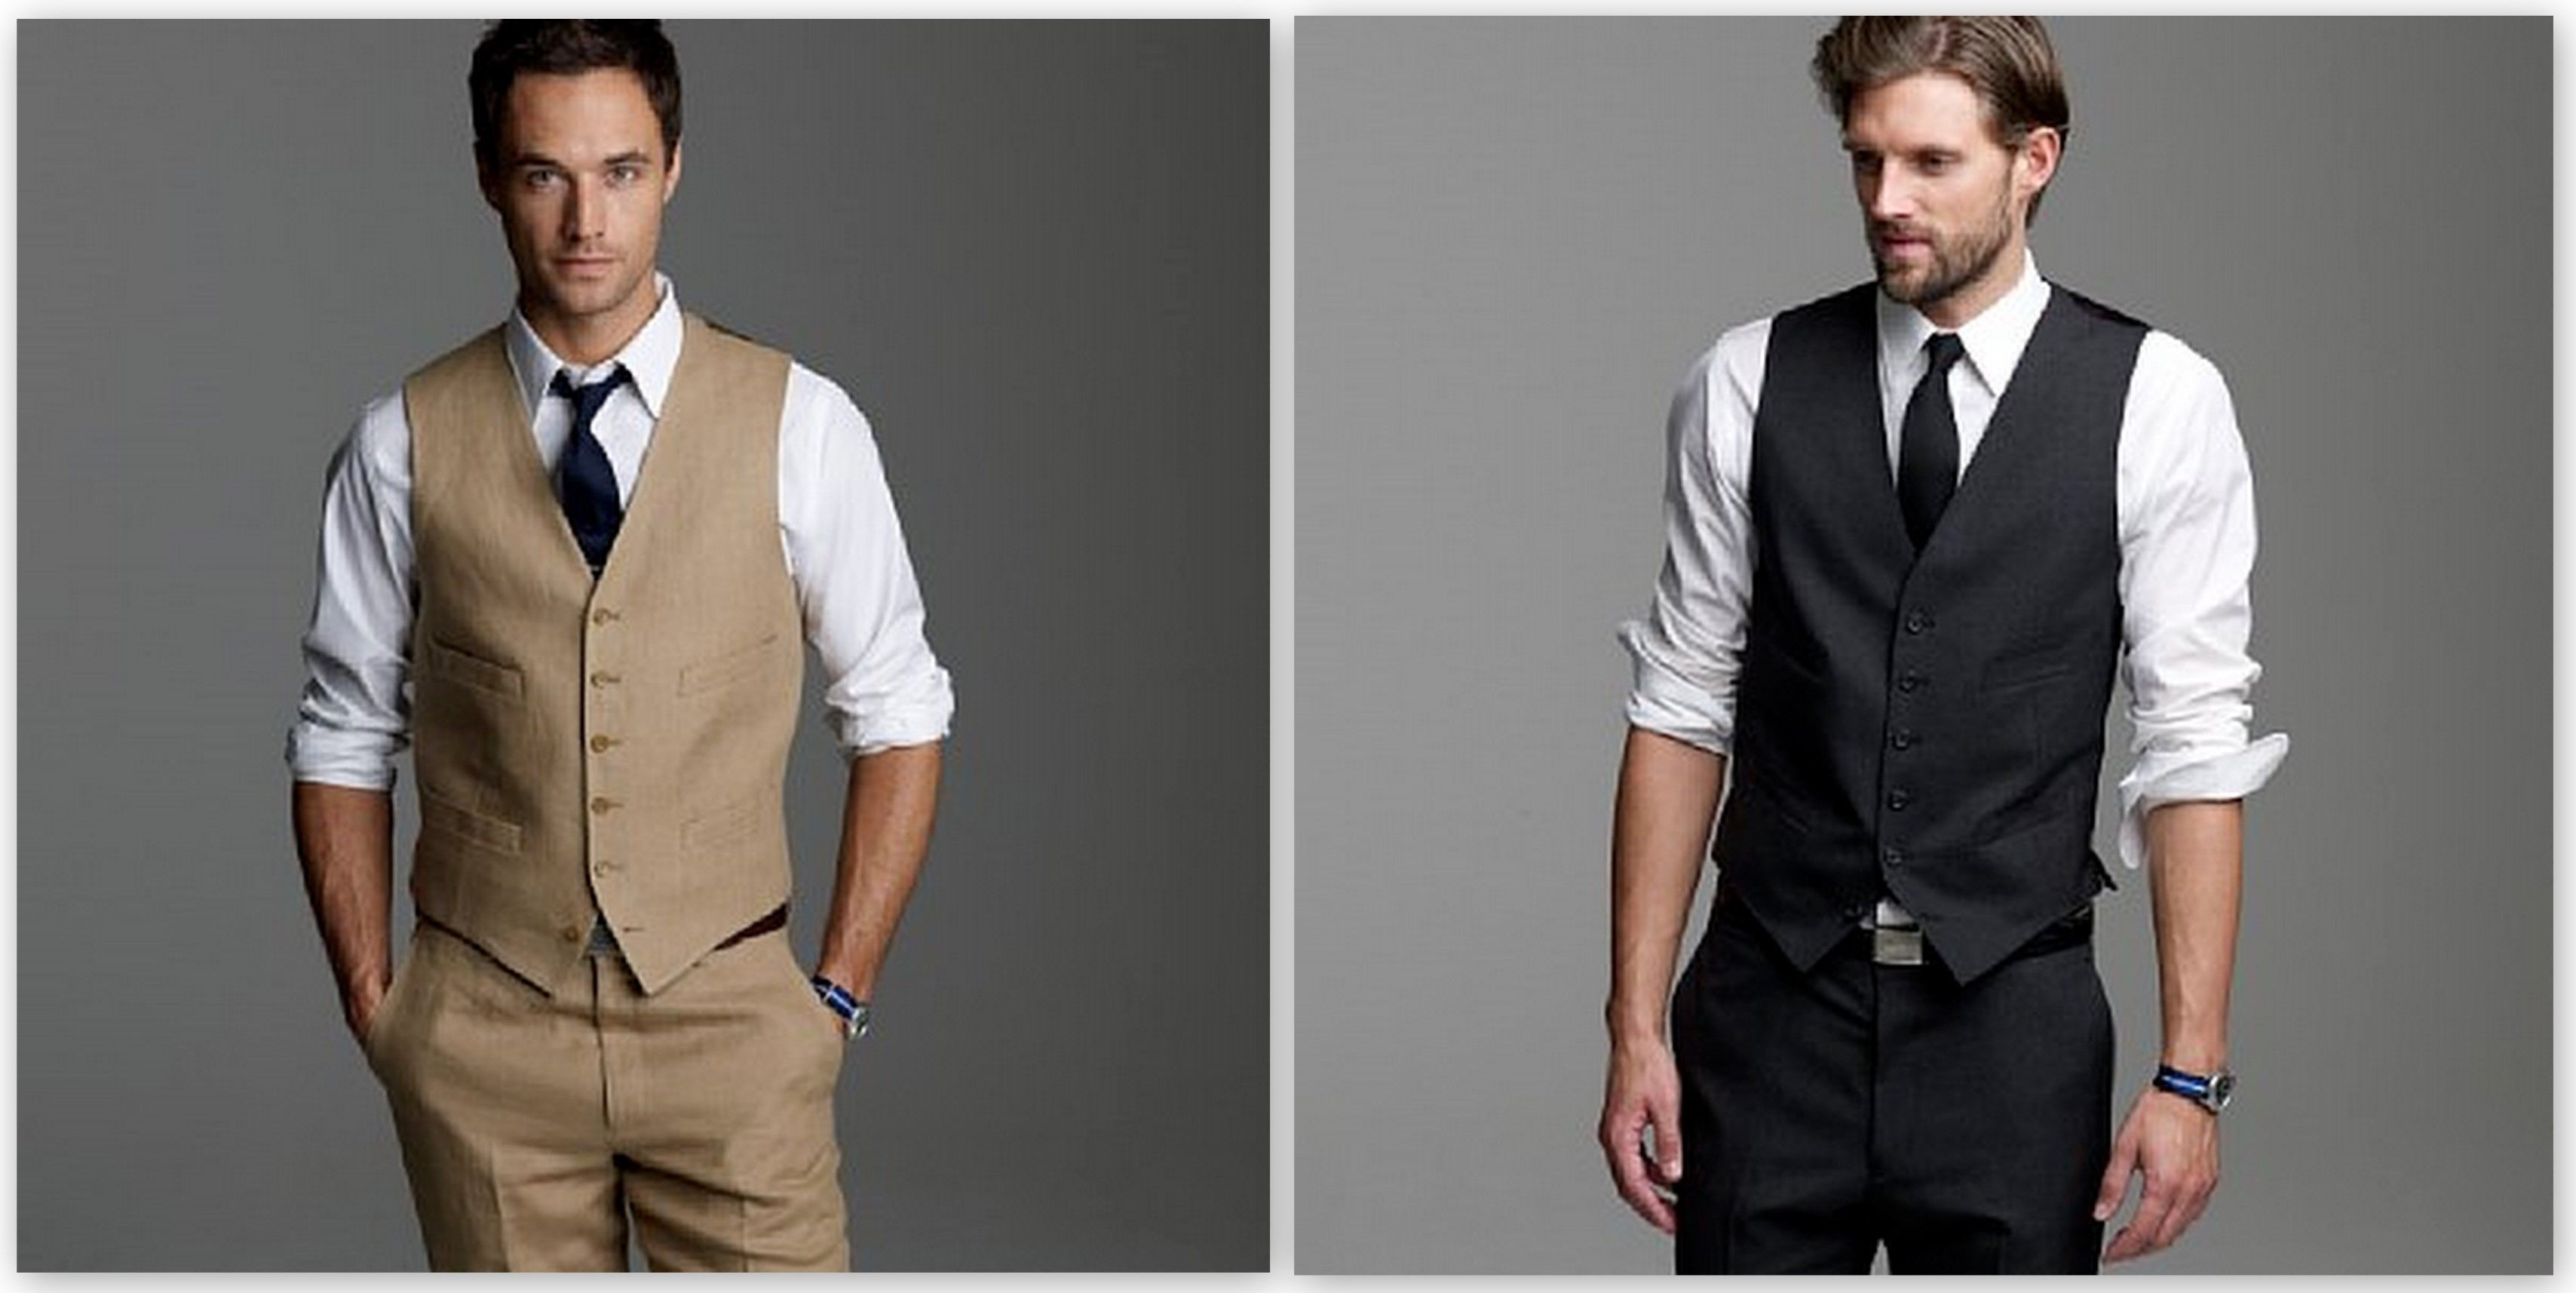 wedding attire for men | ... Planner | Arizona Wedding Planner ...